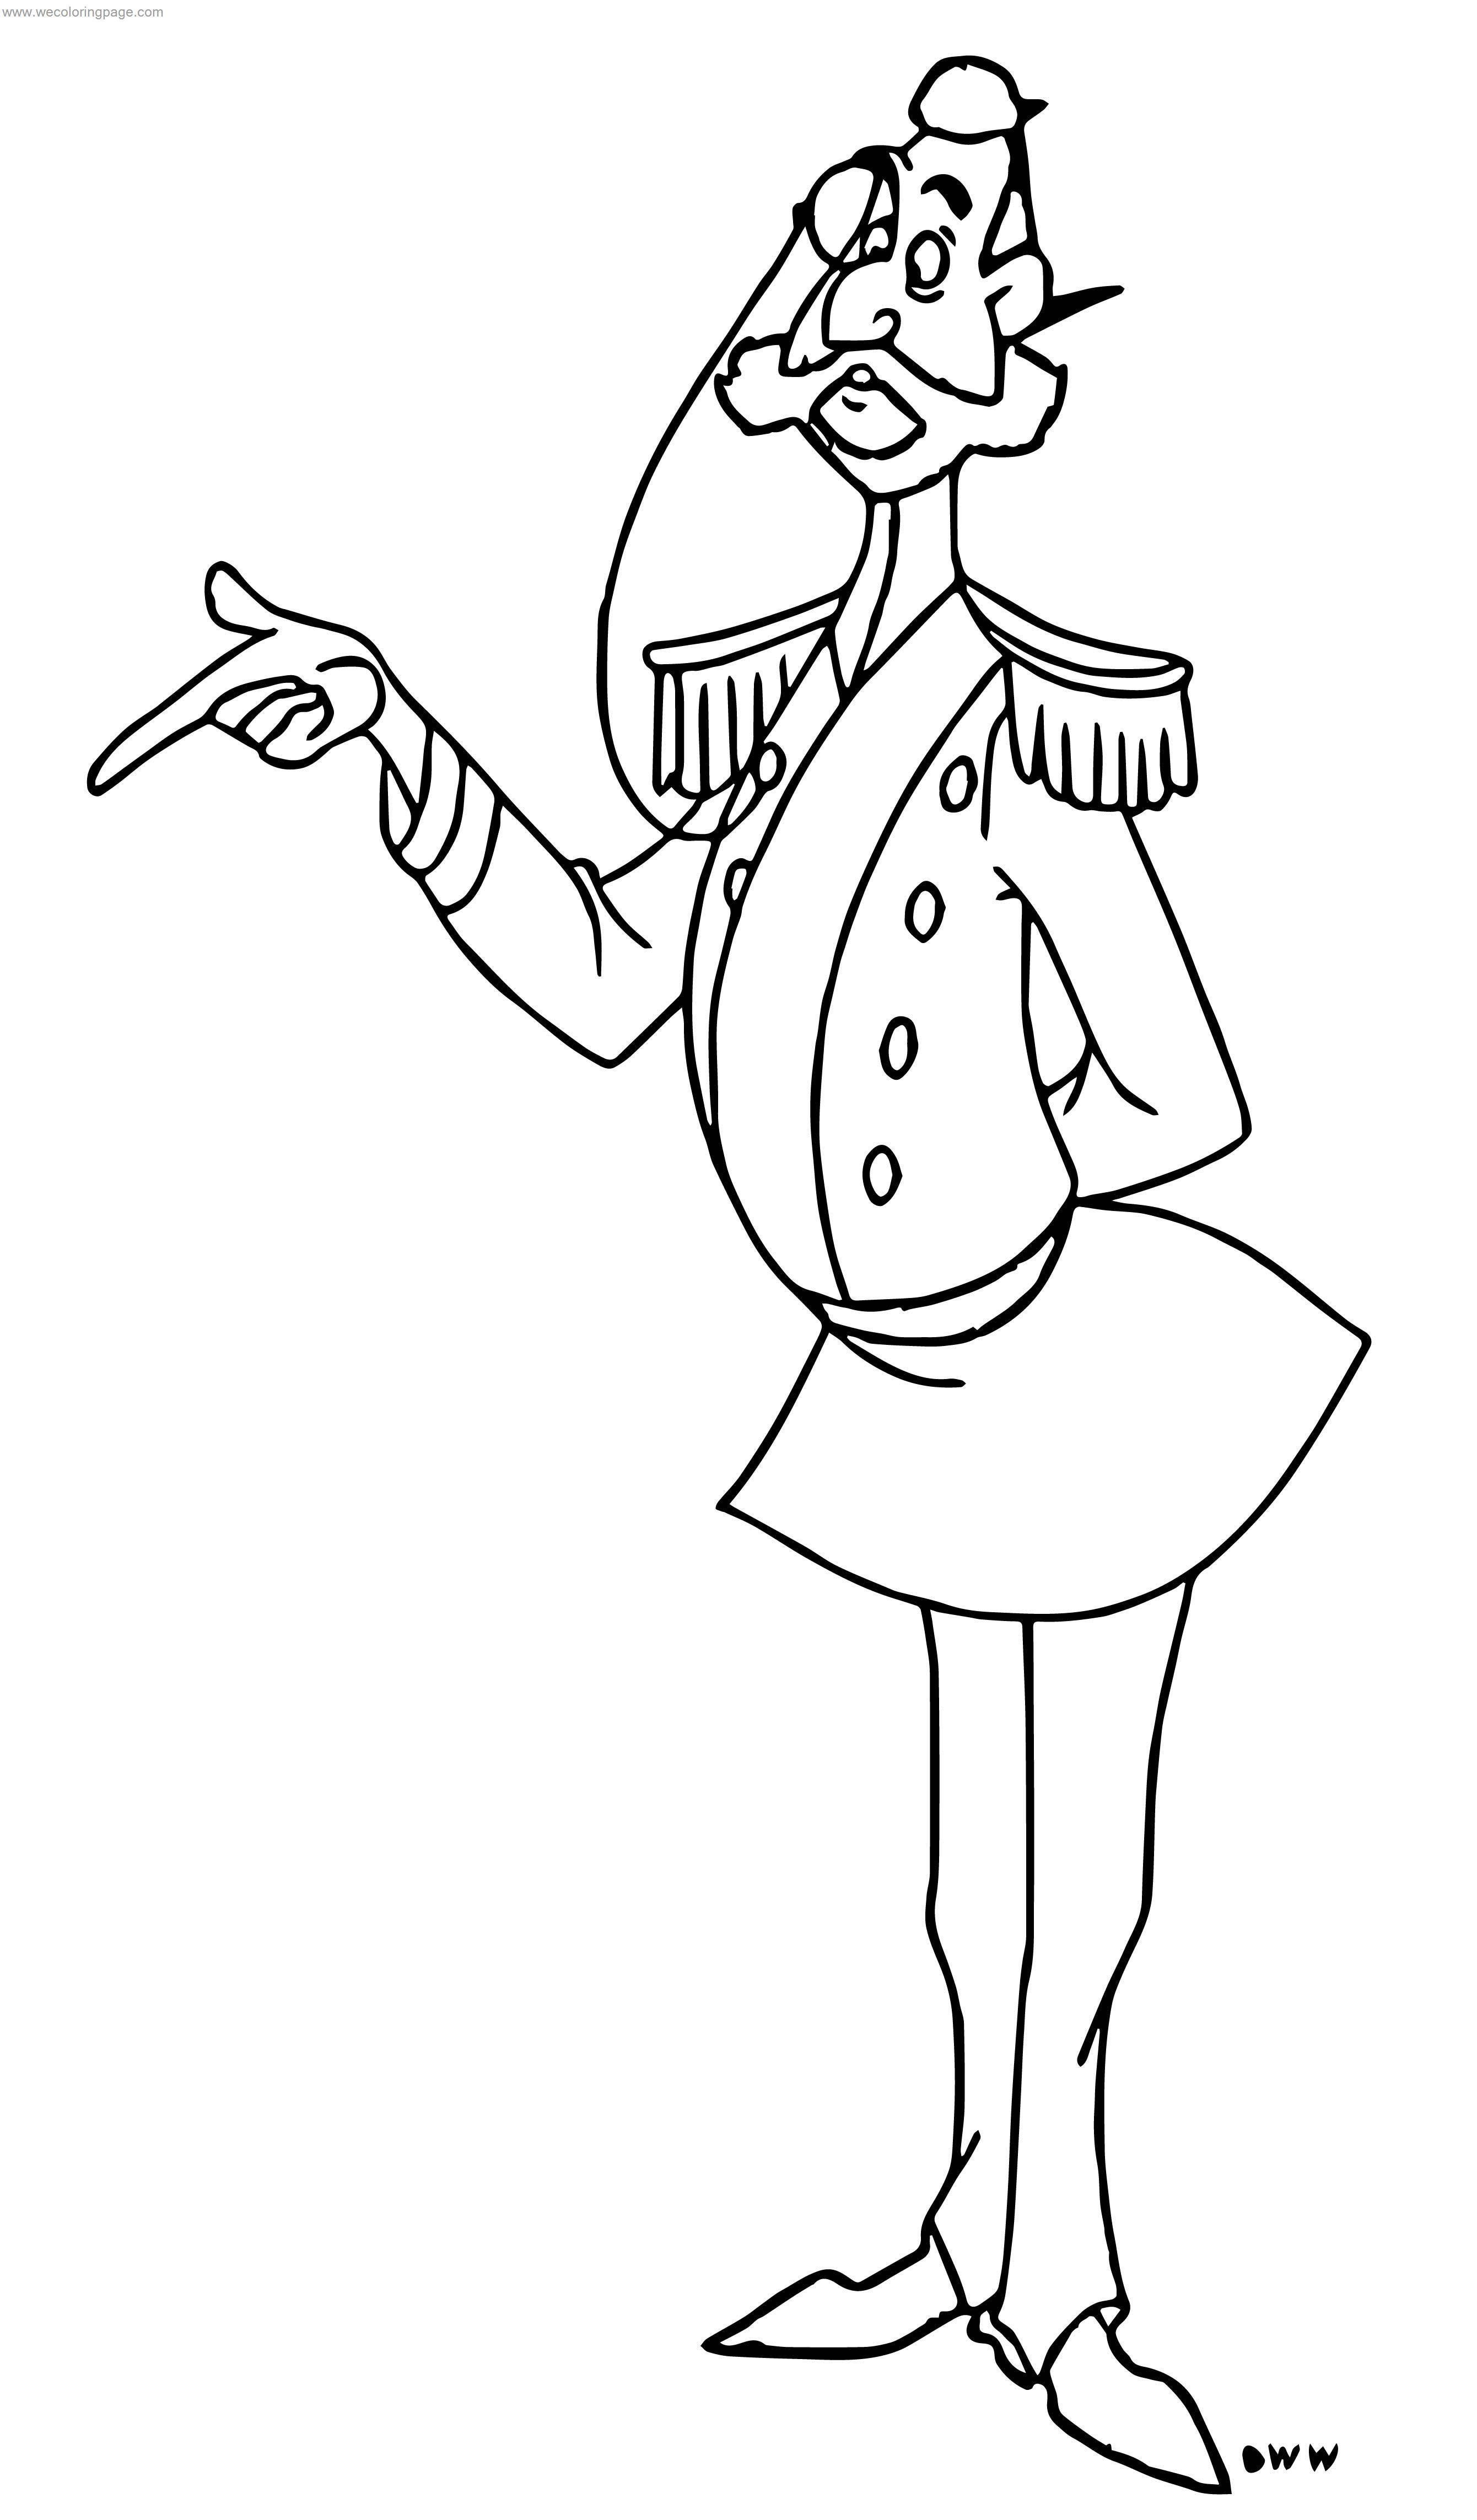 Prince Charming What Coloring Page